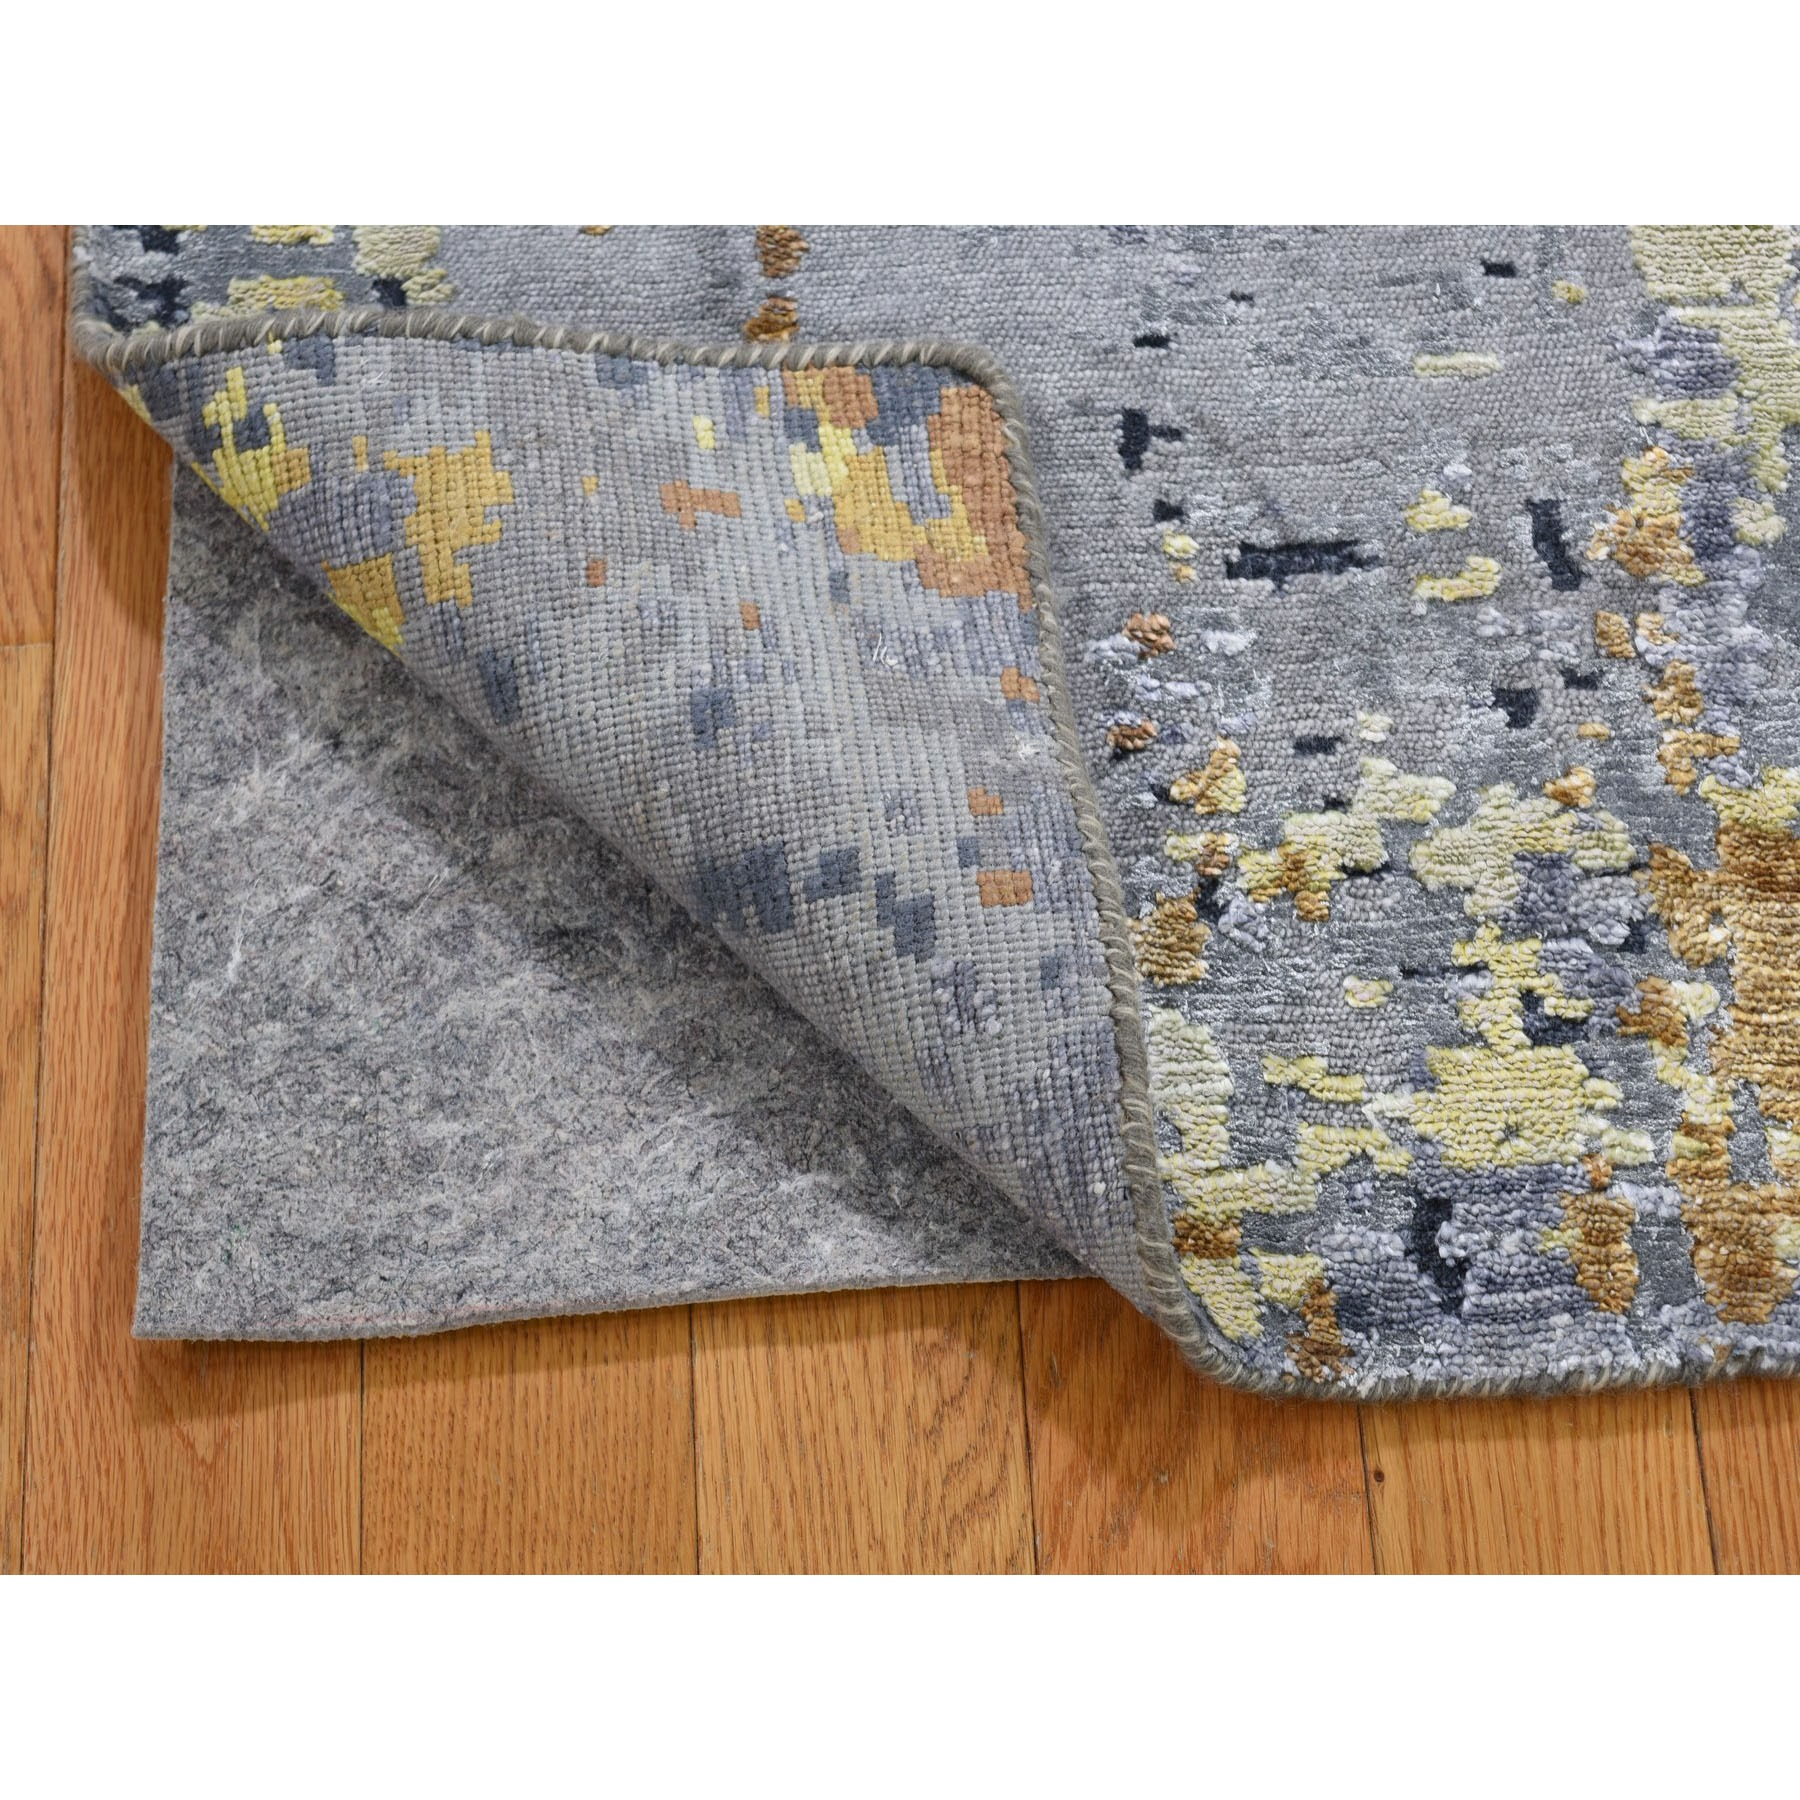 2'x3' Gray Abstract Design Wool and Silk Hi-Low Pile Hand Knotted Oriental Rug